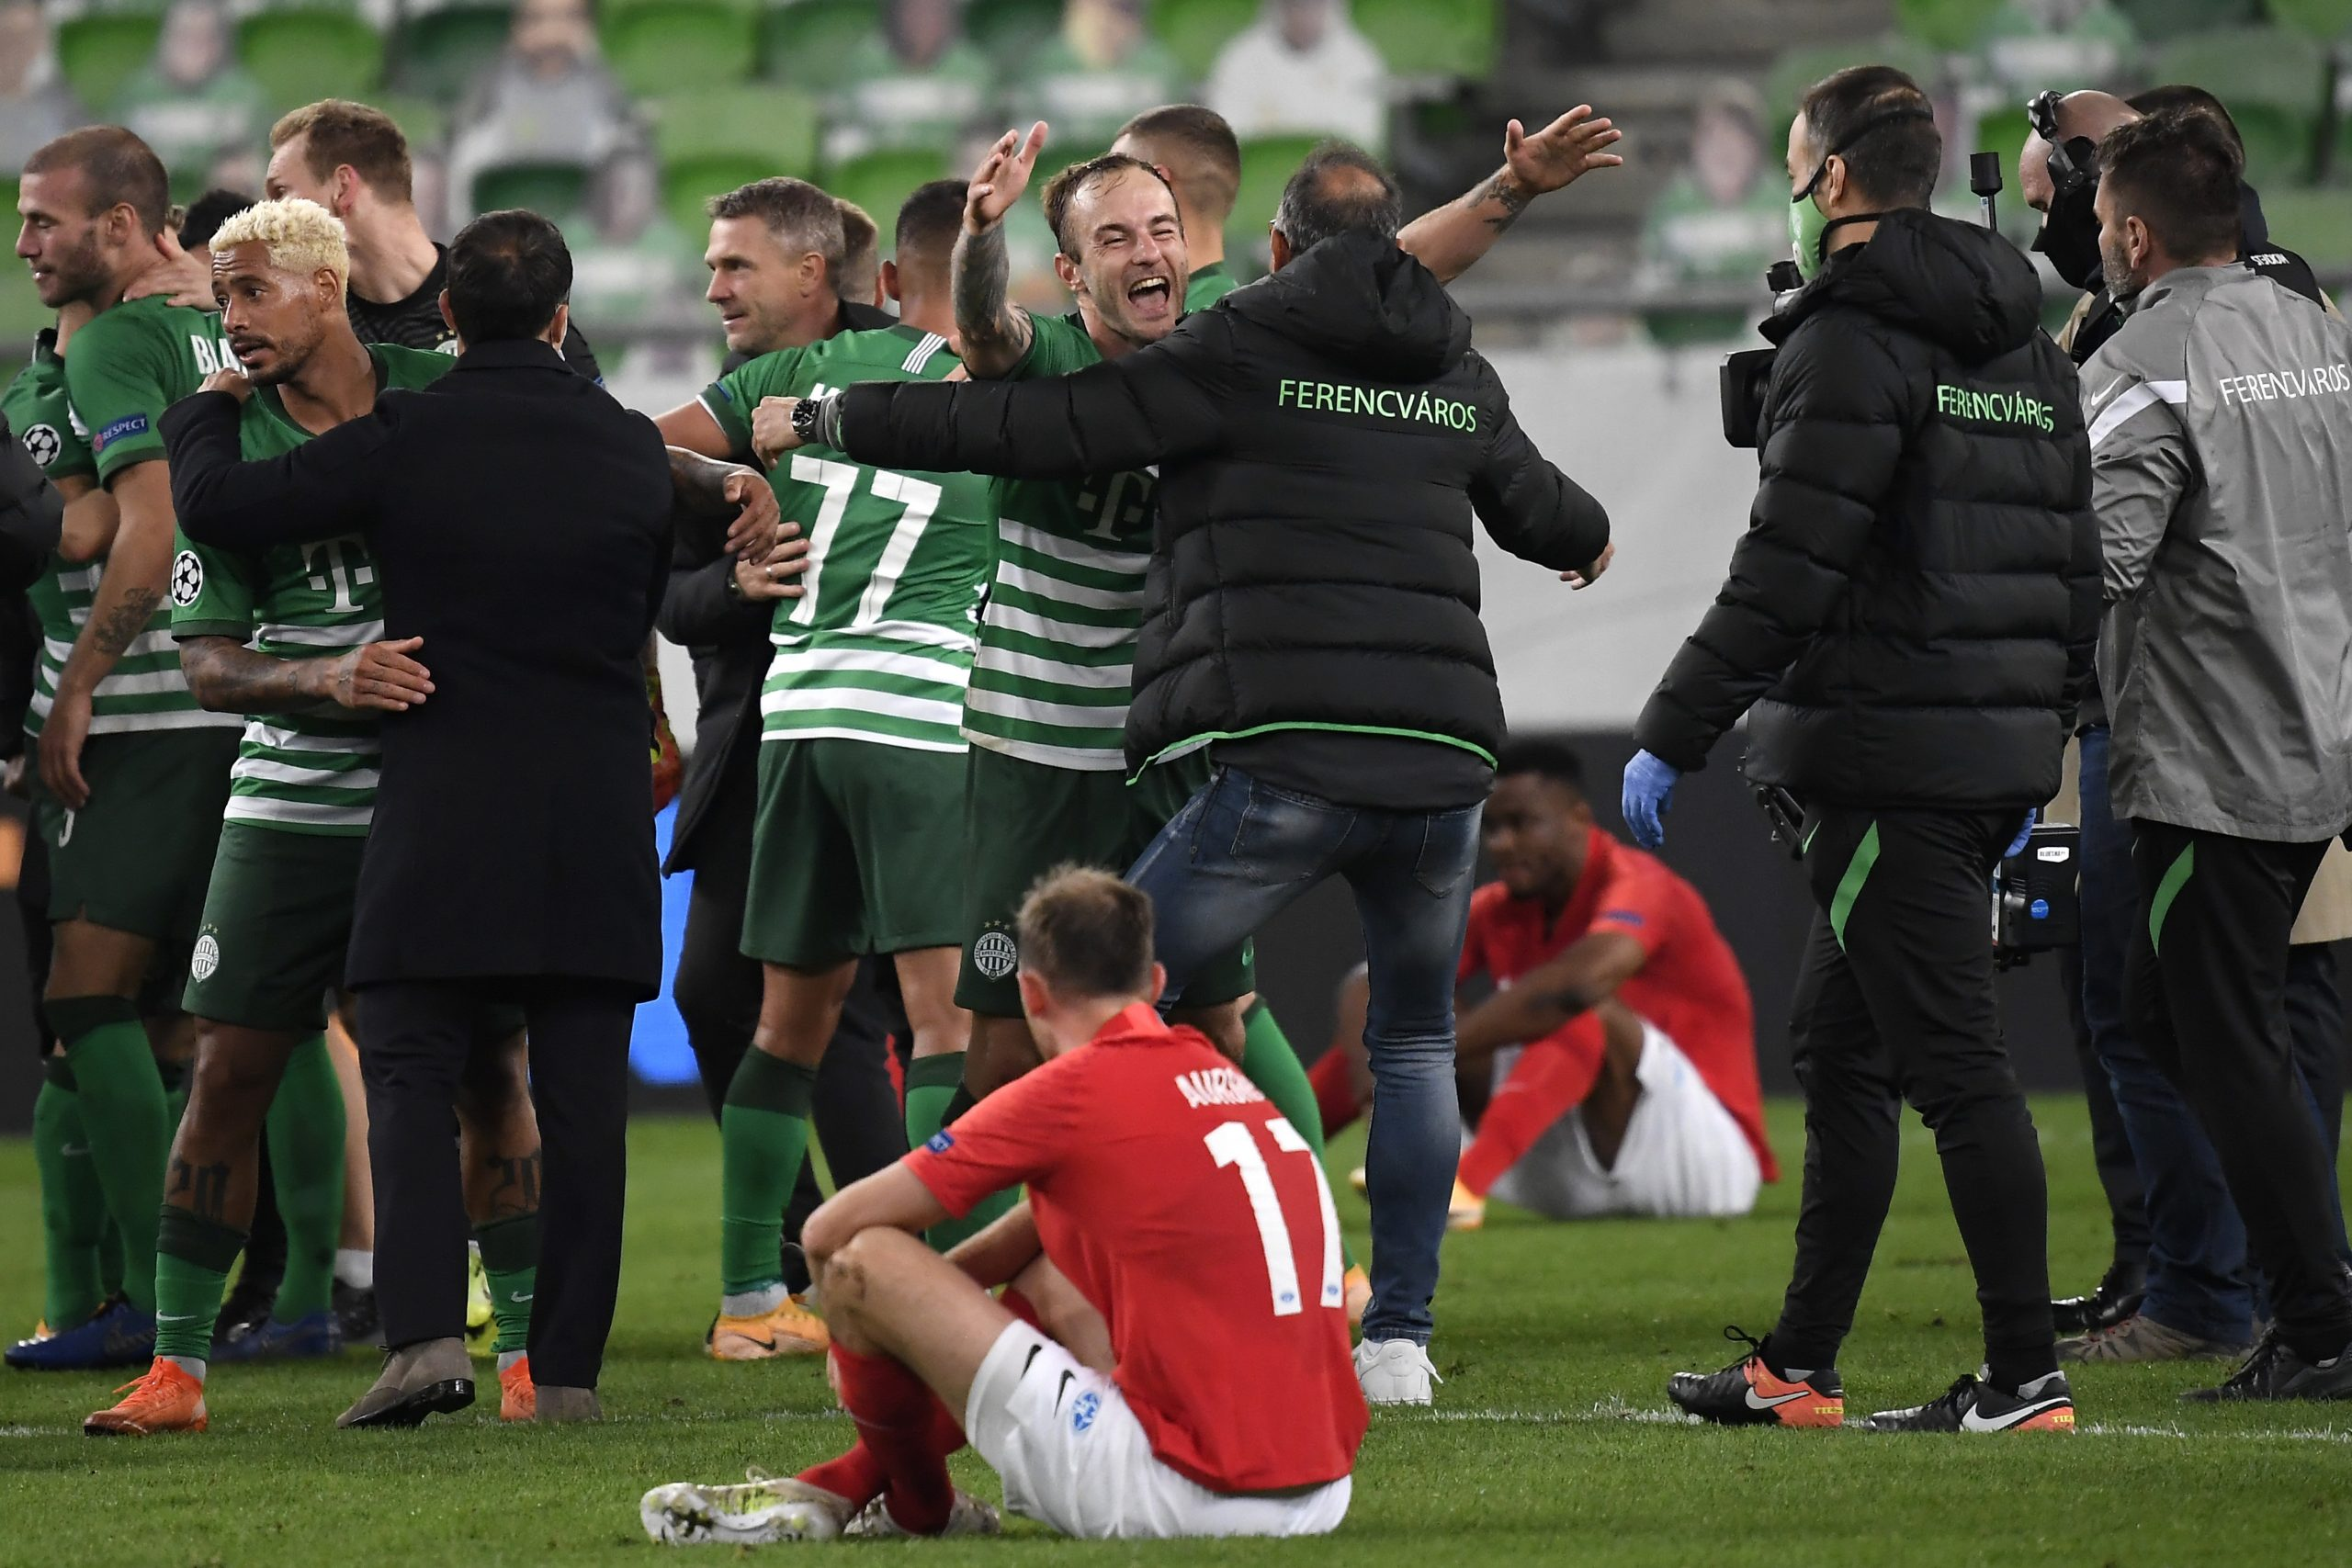 Ferencváros Qualifies for Champions League After 25 Years